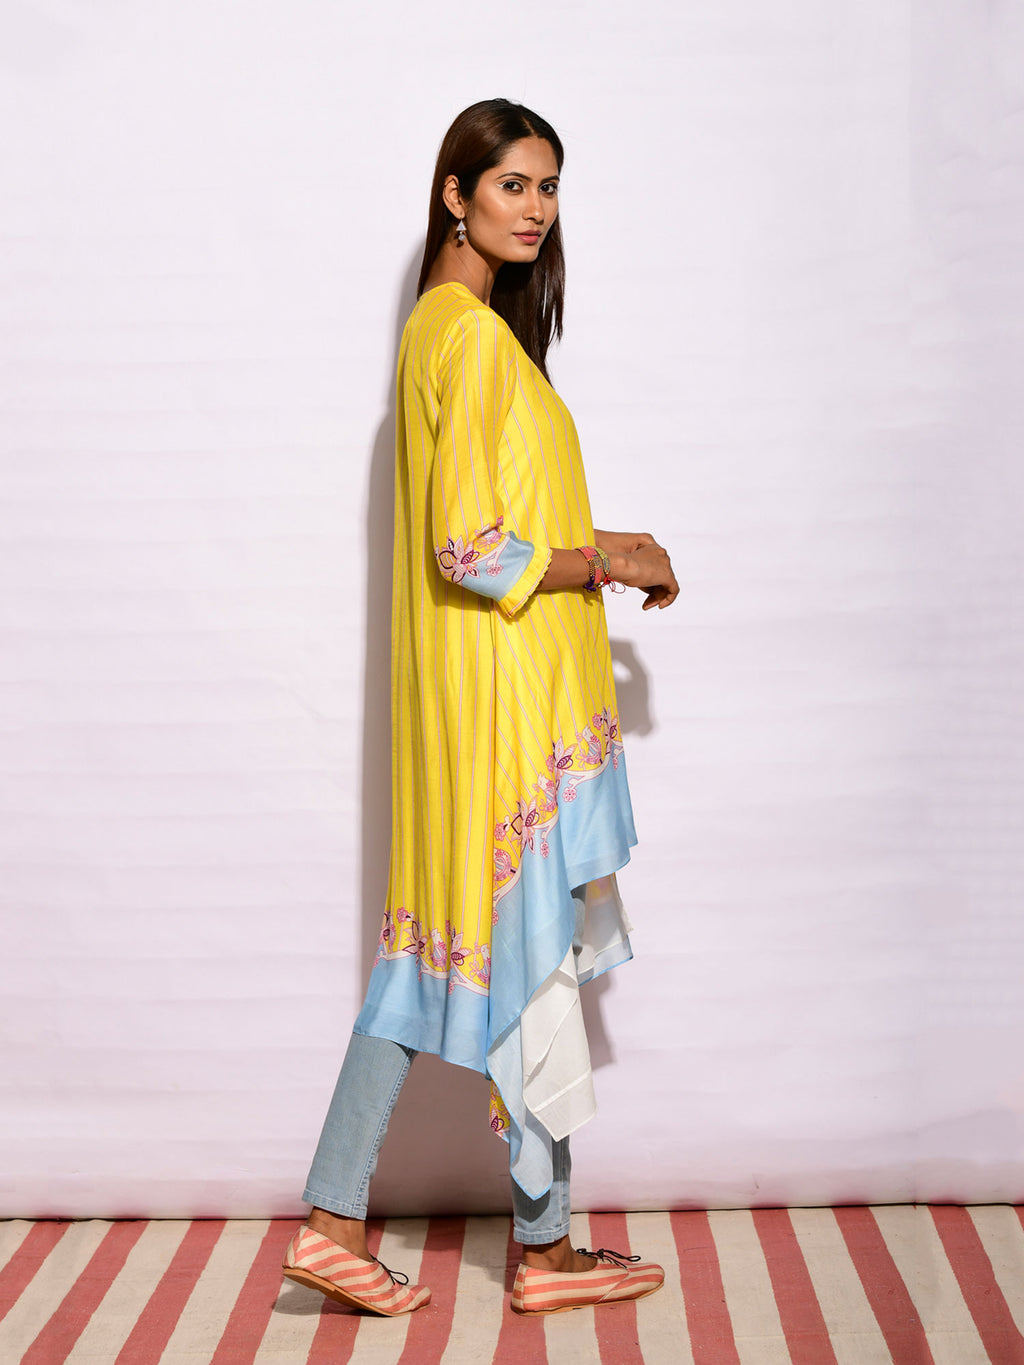 KURTIS, tunics, kurtas, style, fashion, indian contemporary fashion, indianapparel, womenswear, swativijaivargie, PRINTEDTUNICS